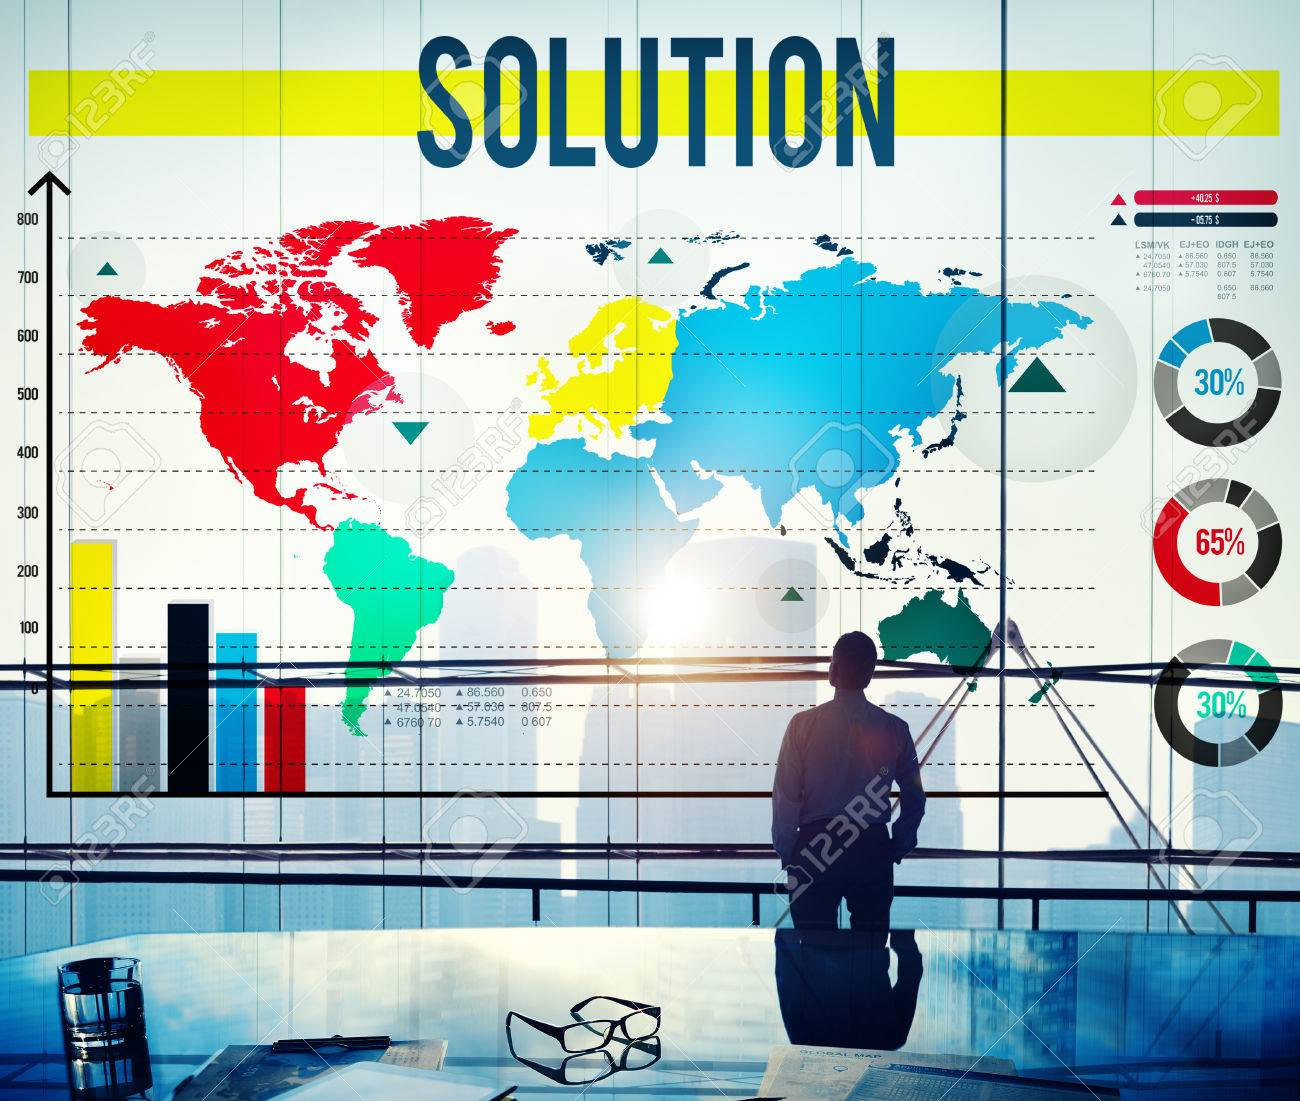 solution problem solving decision answers concept stock photo solution problem solving decision answers concept stock photo 42751951